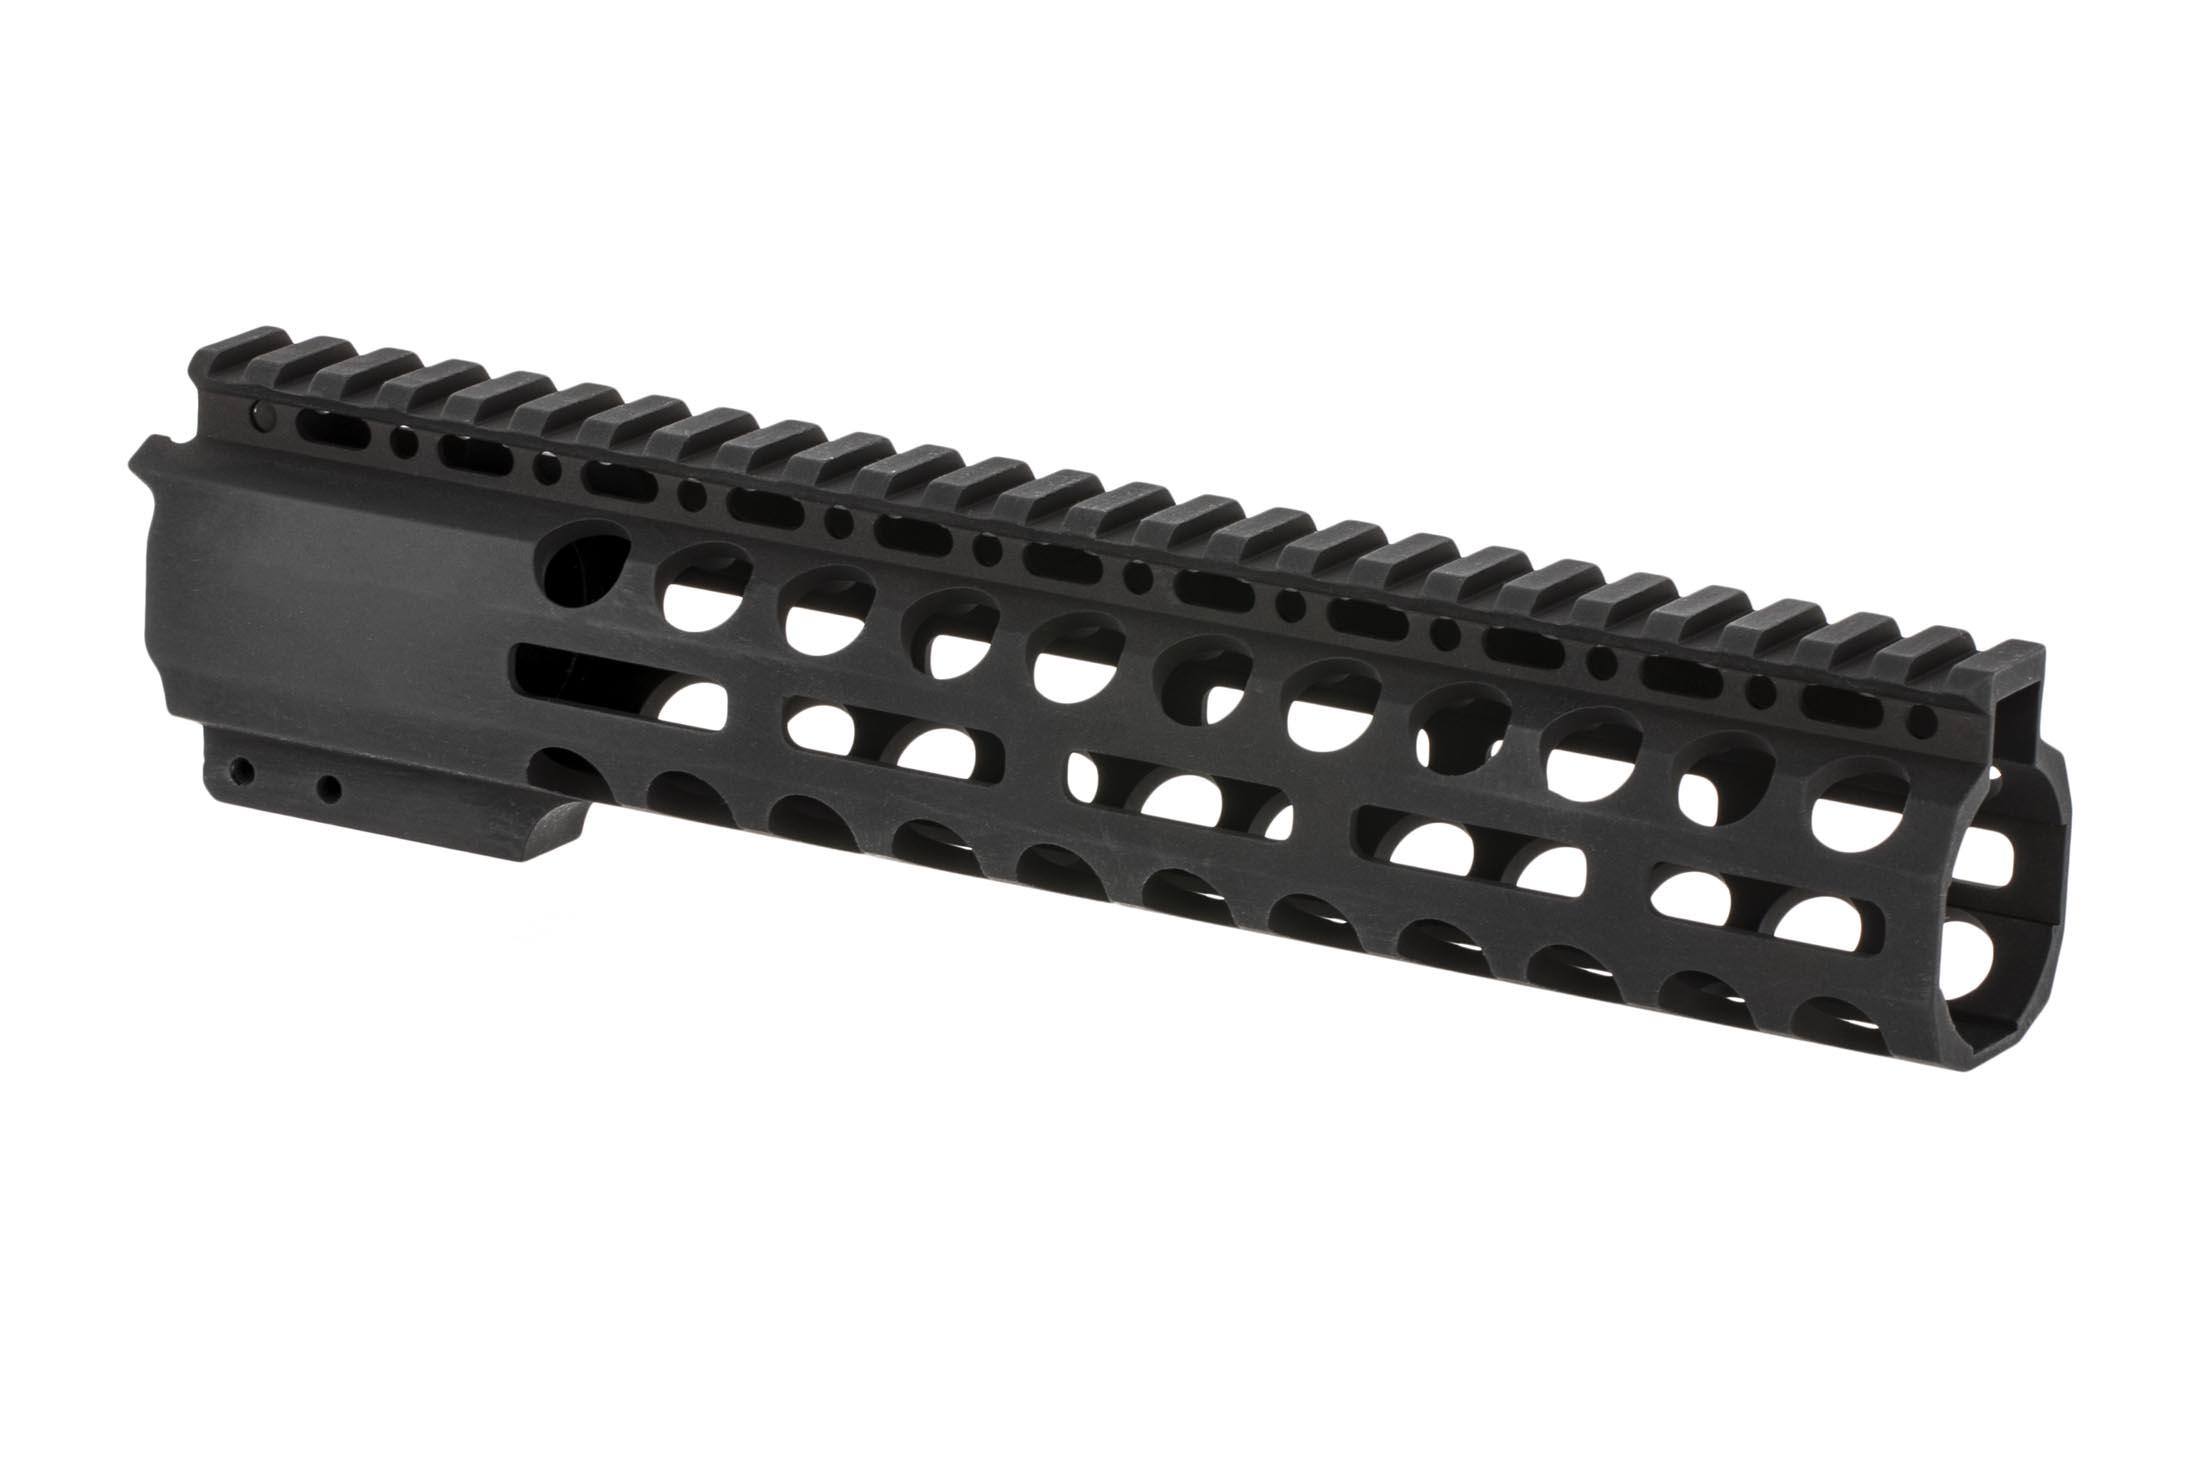 Radical Firearms 3rd generation free float Primary Arms Exclusive M-LOK handguard for the AR-15 is 10 long to cover mid-length gas systems